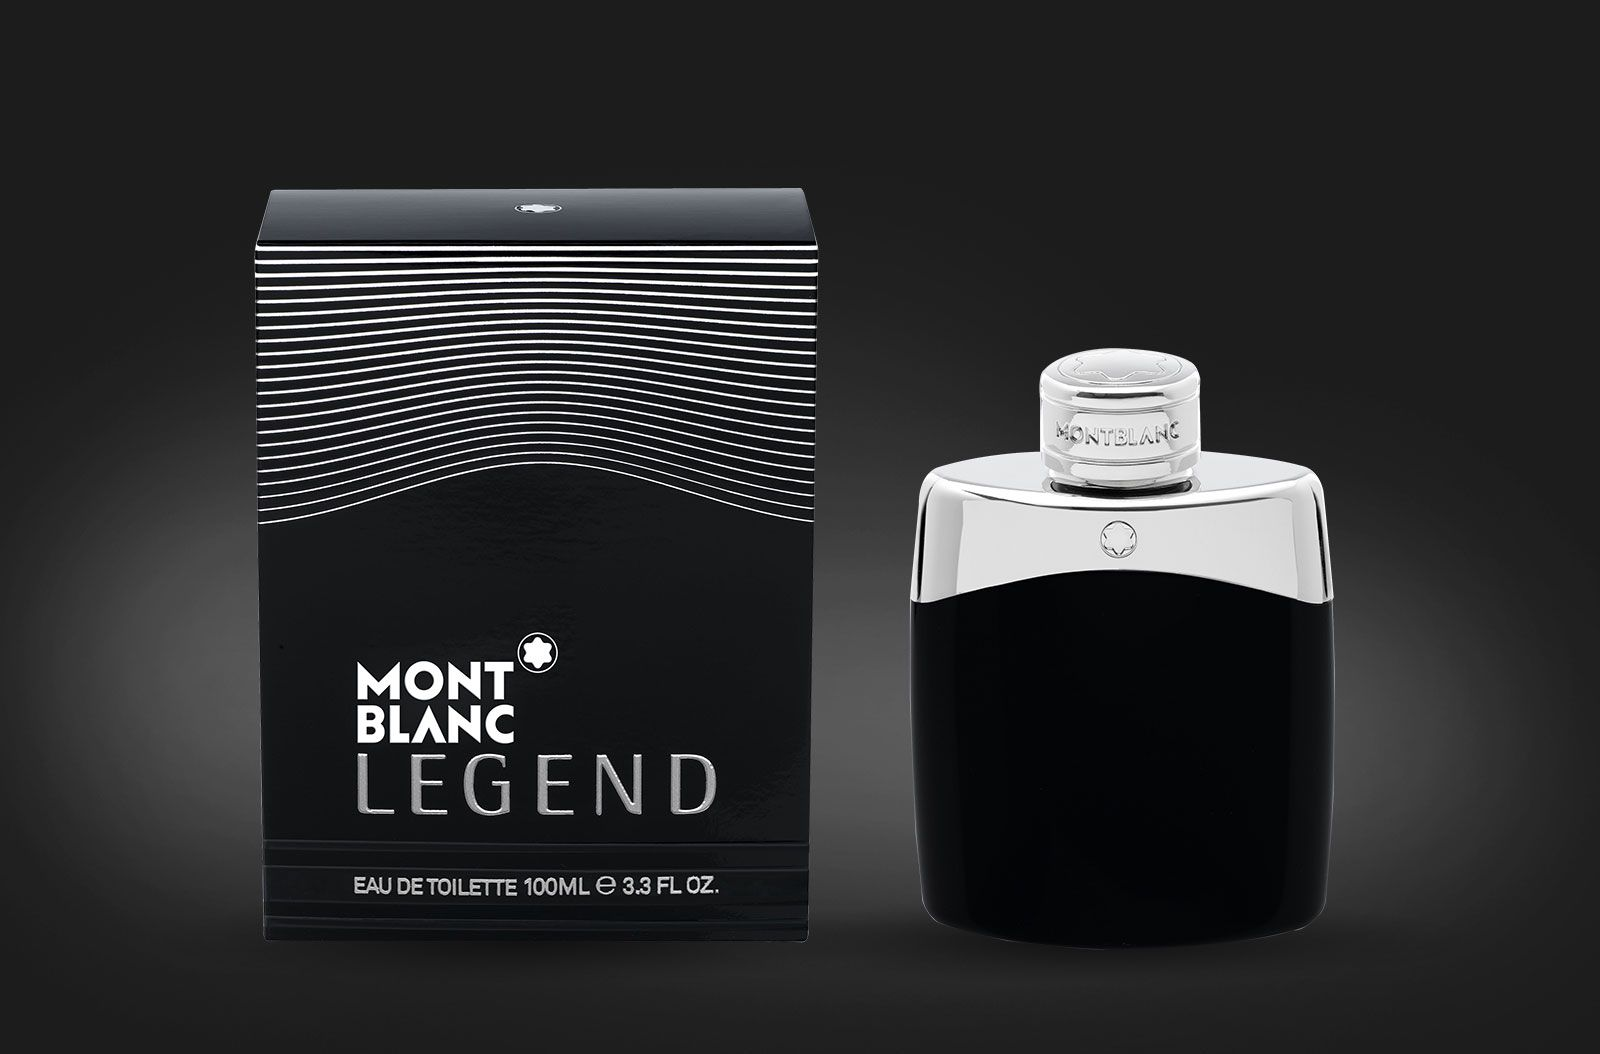 Montblanc Legend A Fragrance That Embodies All The Richness Of The Montblanc Brand An Eternal And Timeless Fougere Mont Blanc Mont Blanc Fragrance Fragrance